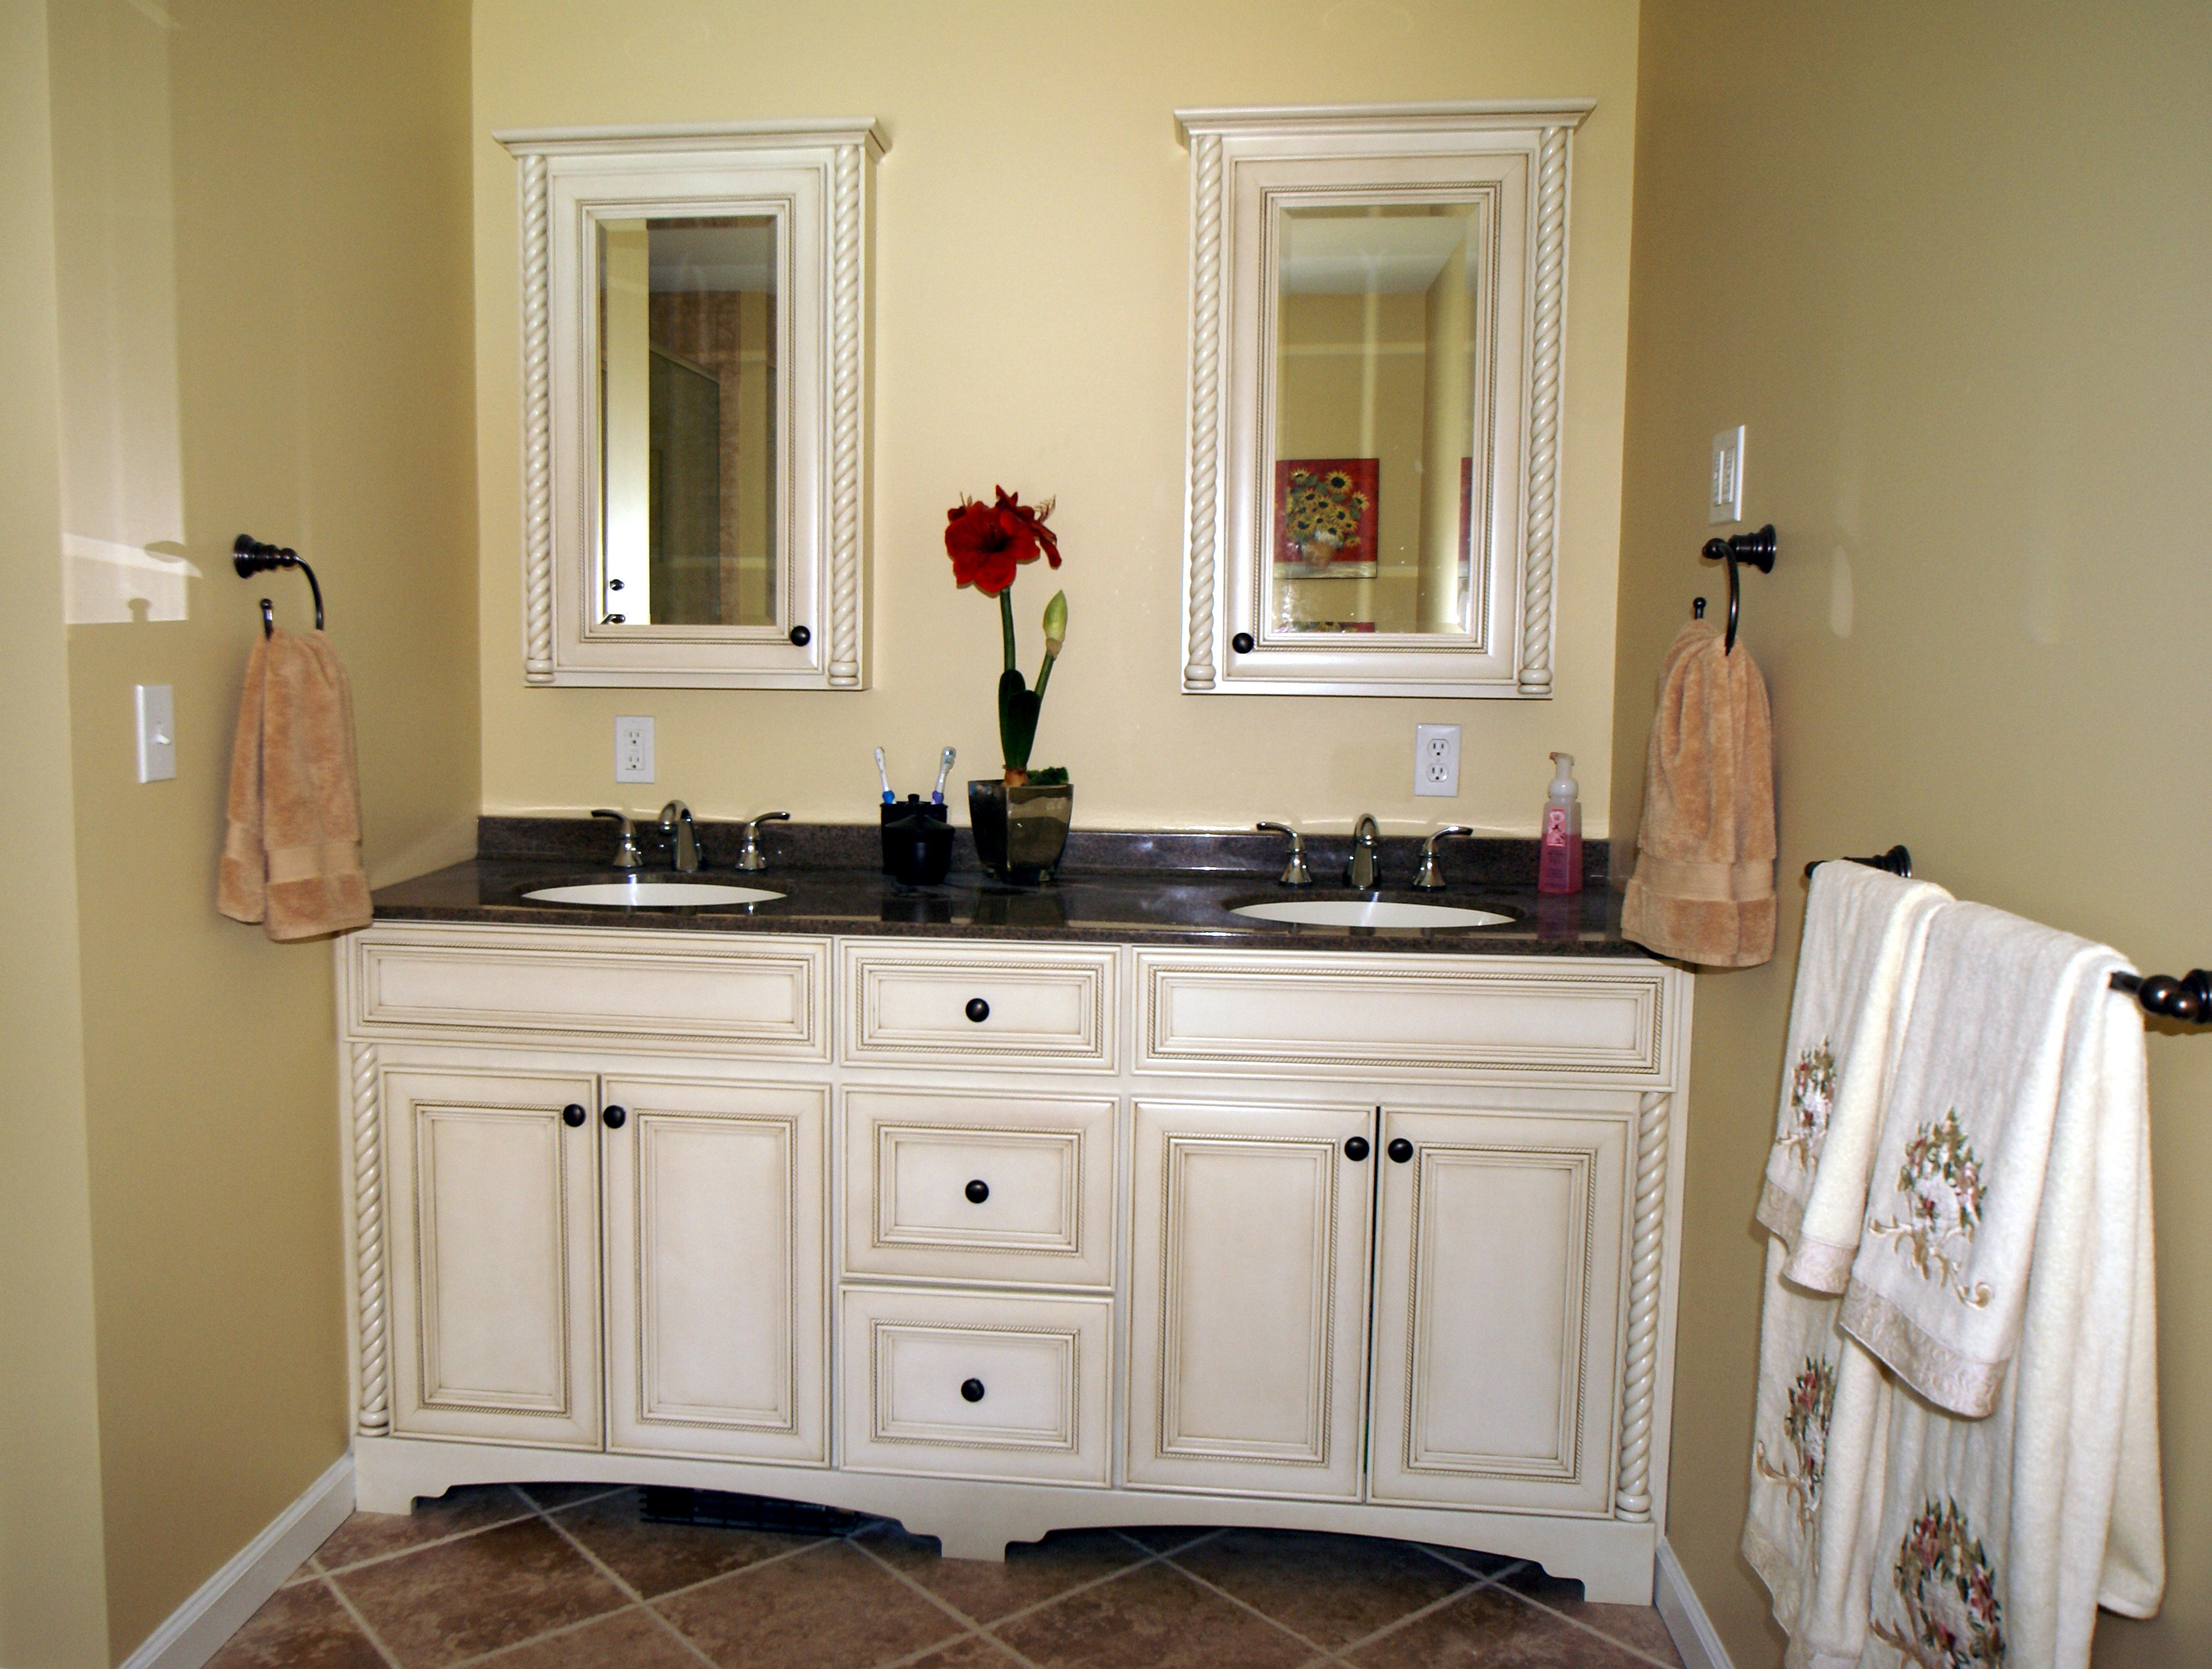 Bathroom counter cabinets